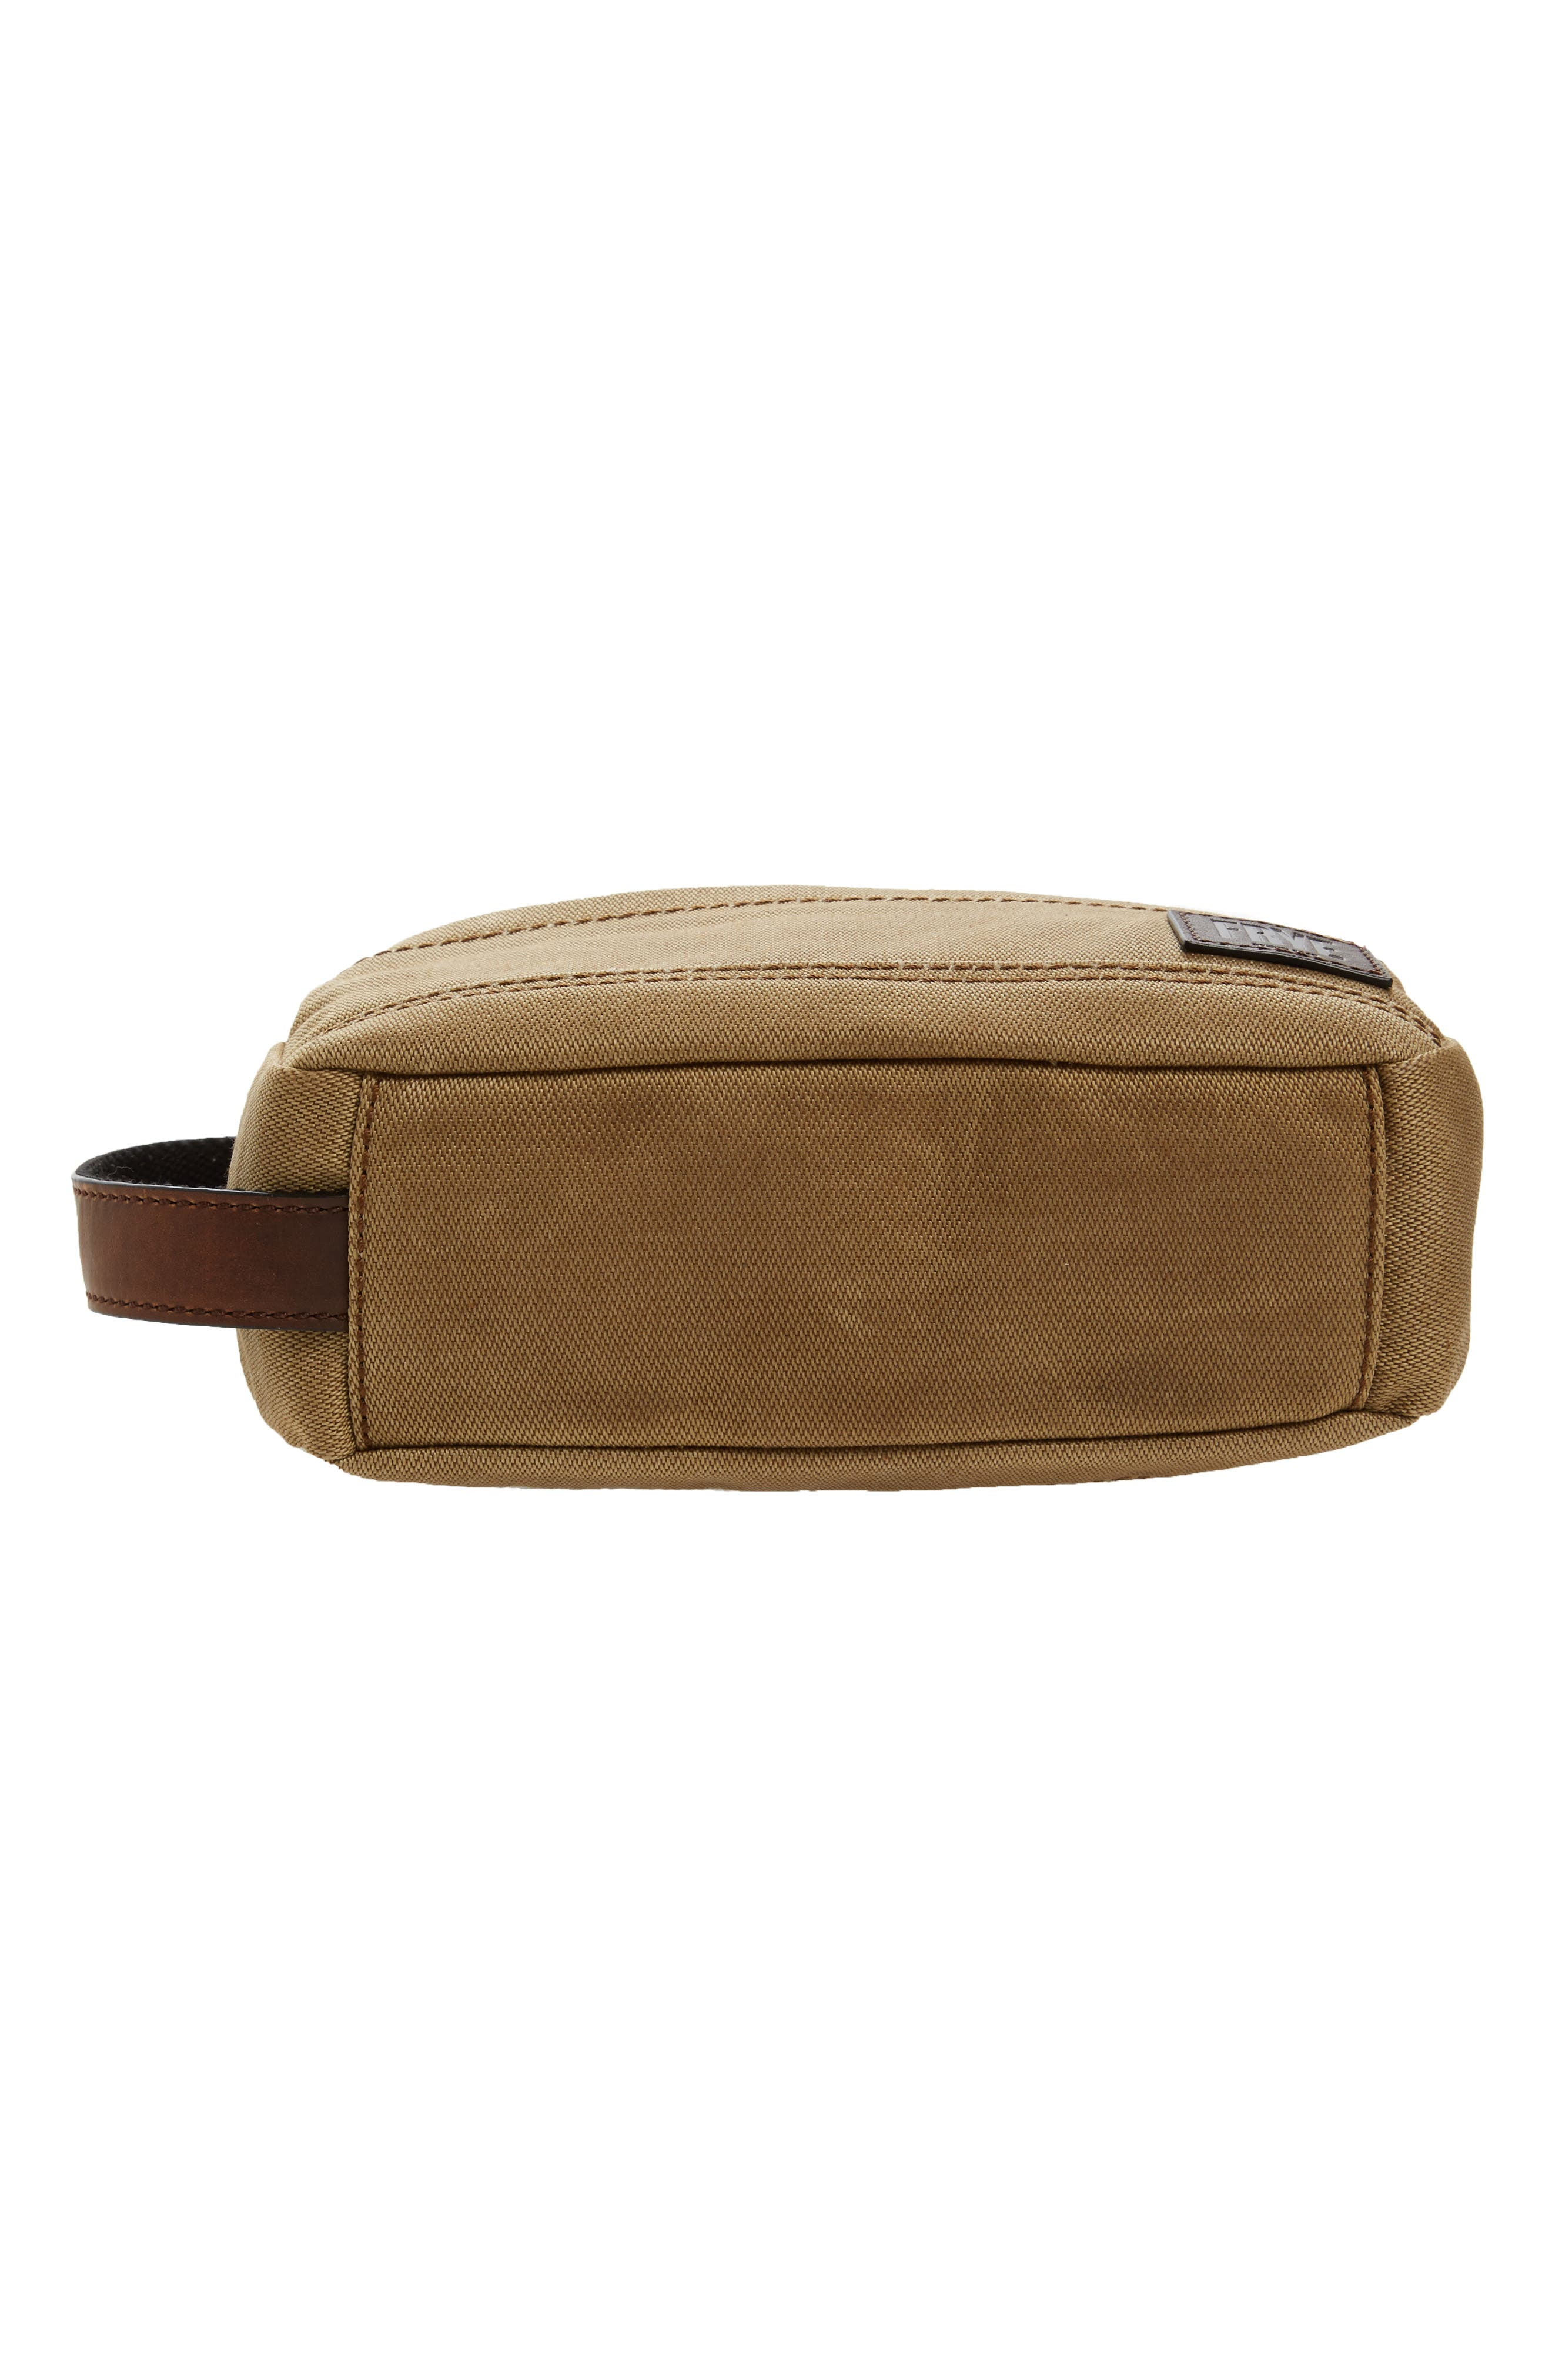 Carter Dopp Kit,                             Alternate thumbnail 5, color,                             231